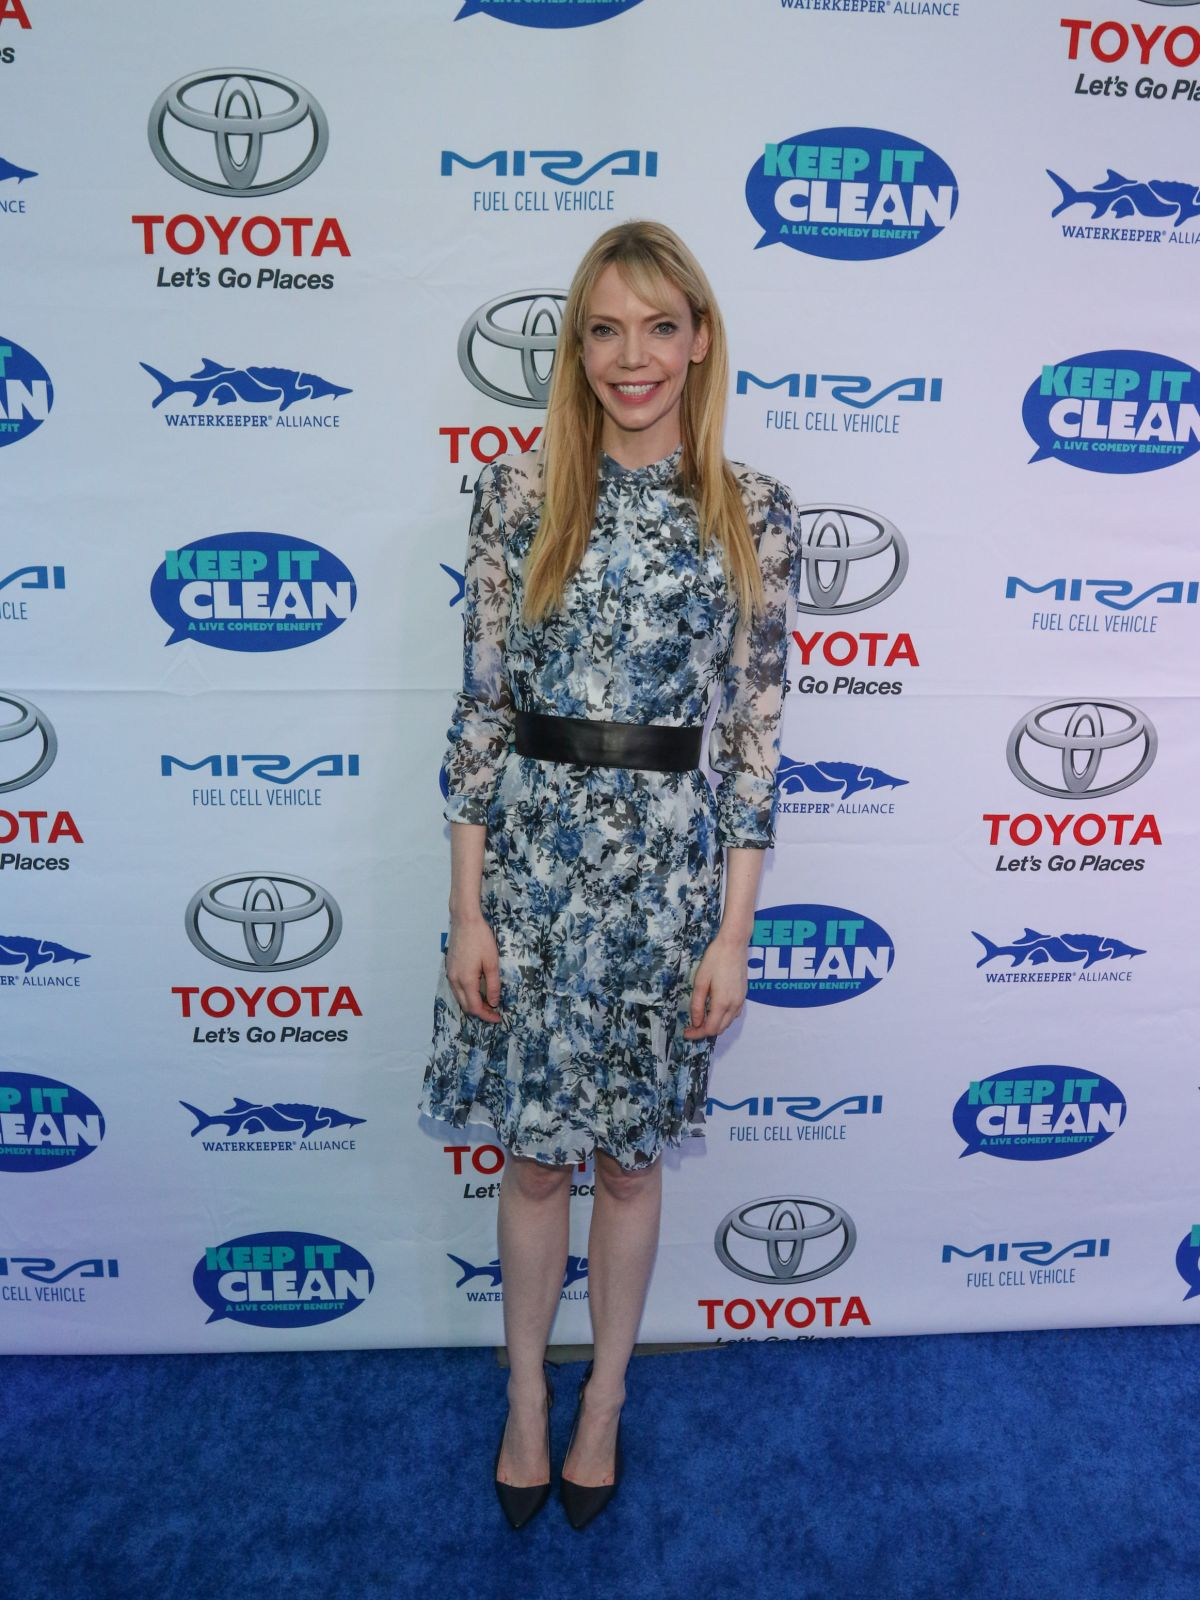 RIKI LINDHOME at Keep It Clean Comedy Benefit in Los Angeles 04/21/2017